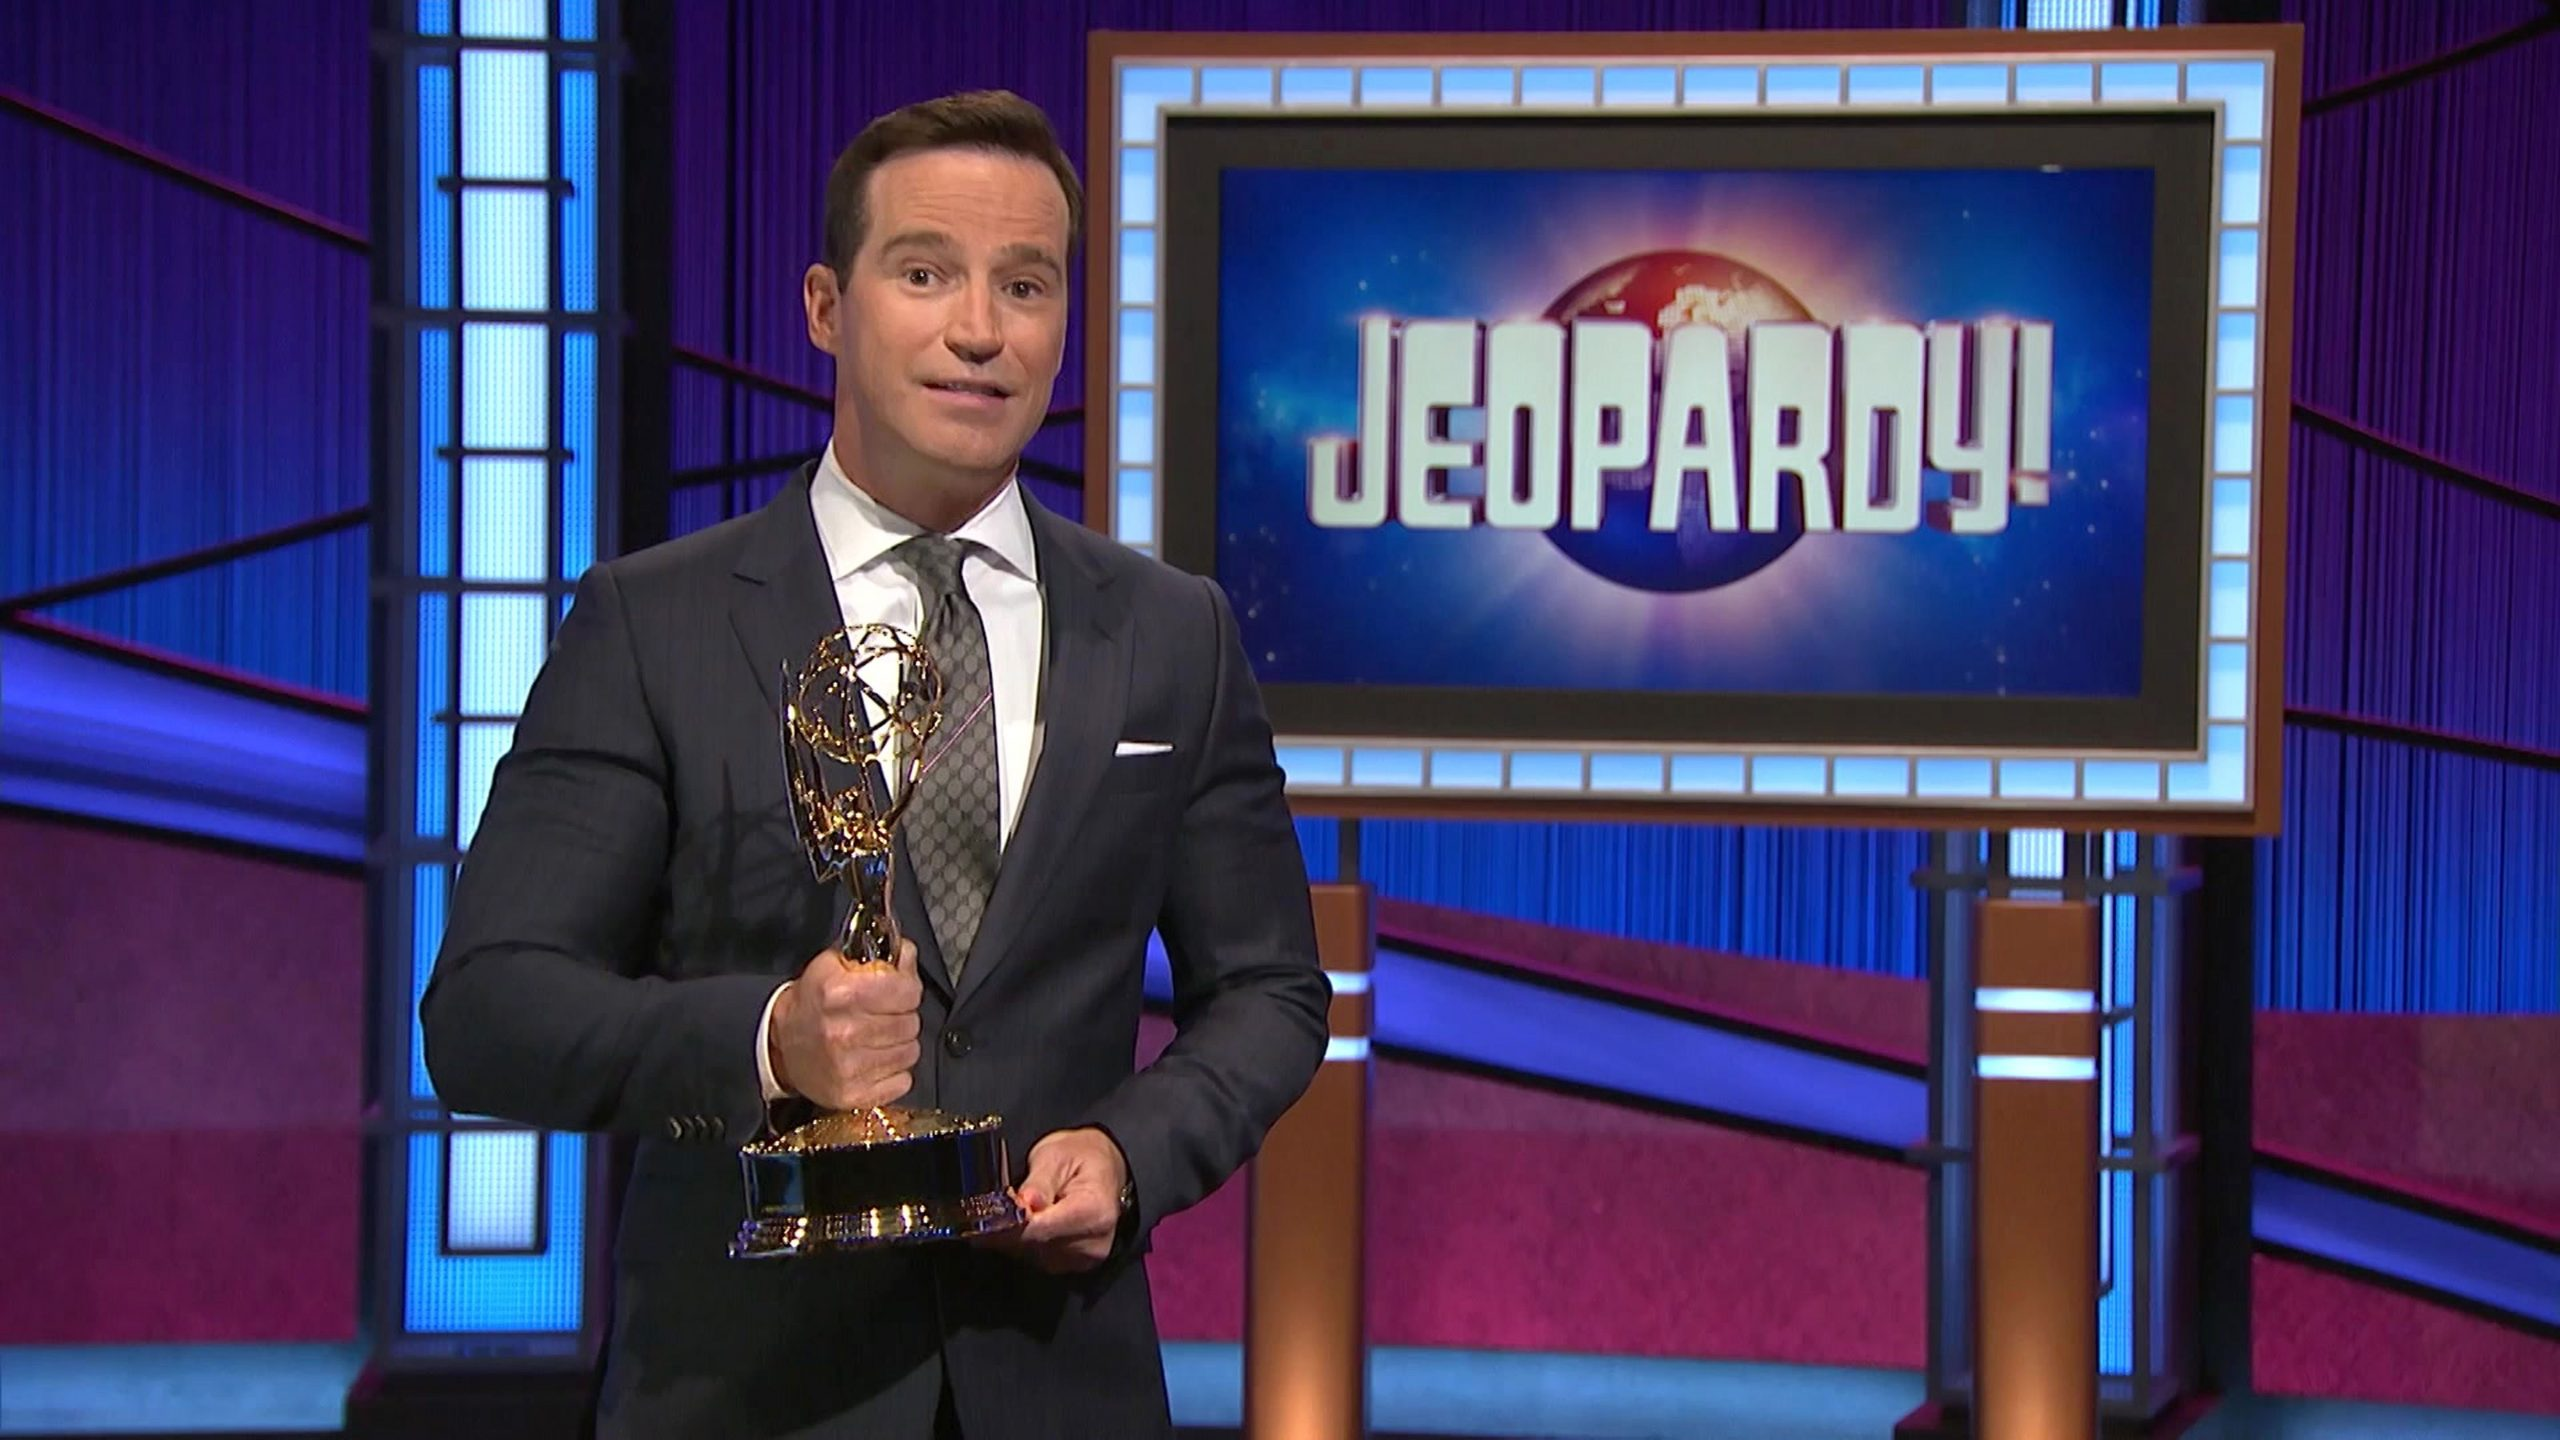 'Jeopardy!'s executive producer and new host Mike Richards